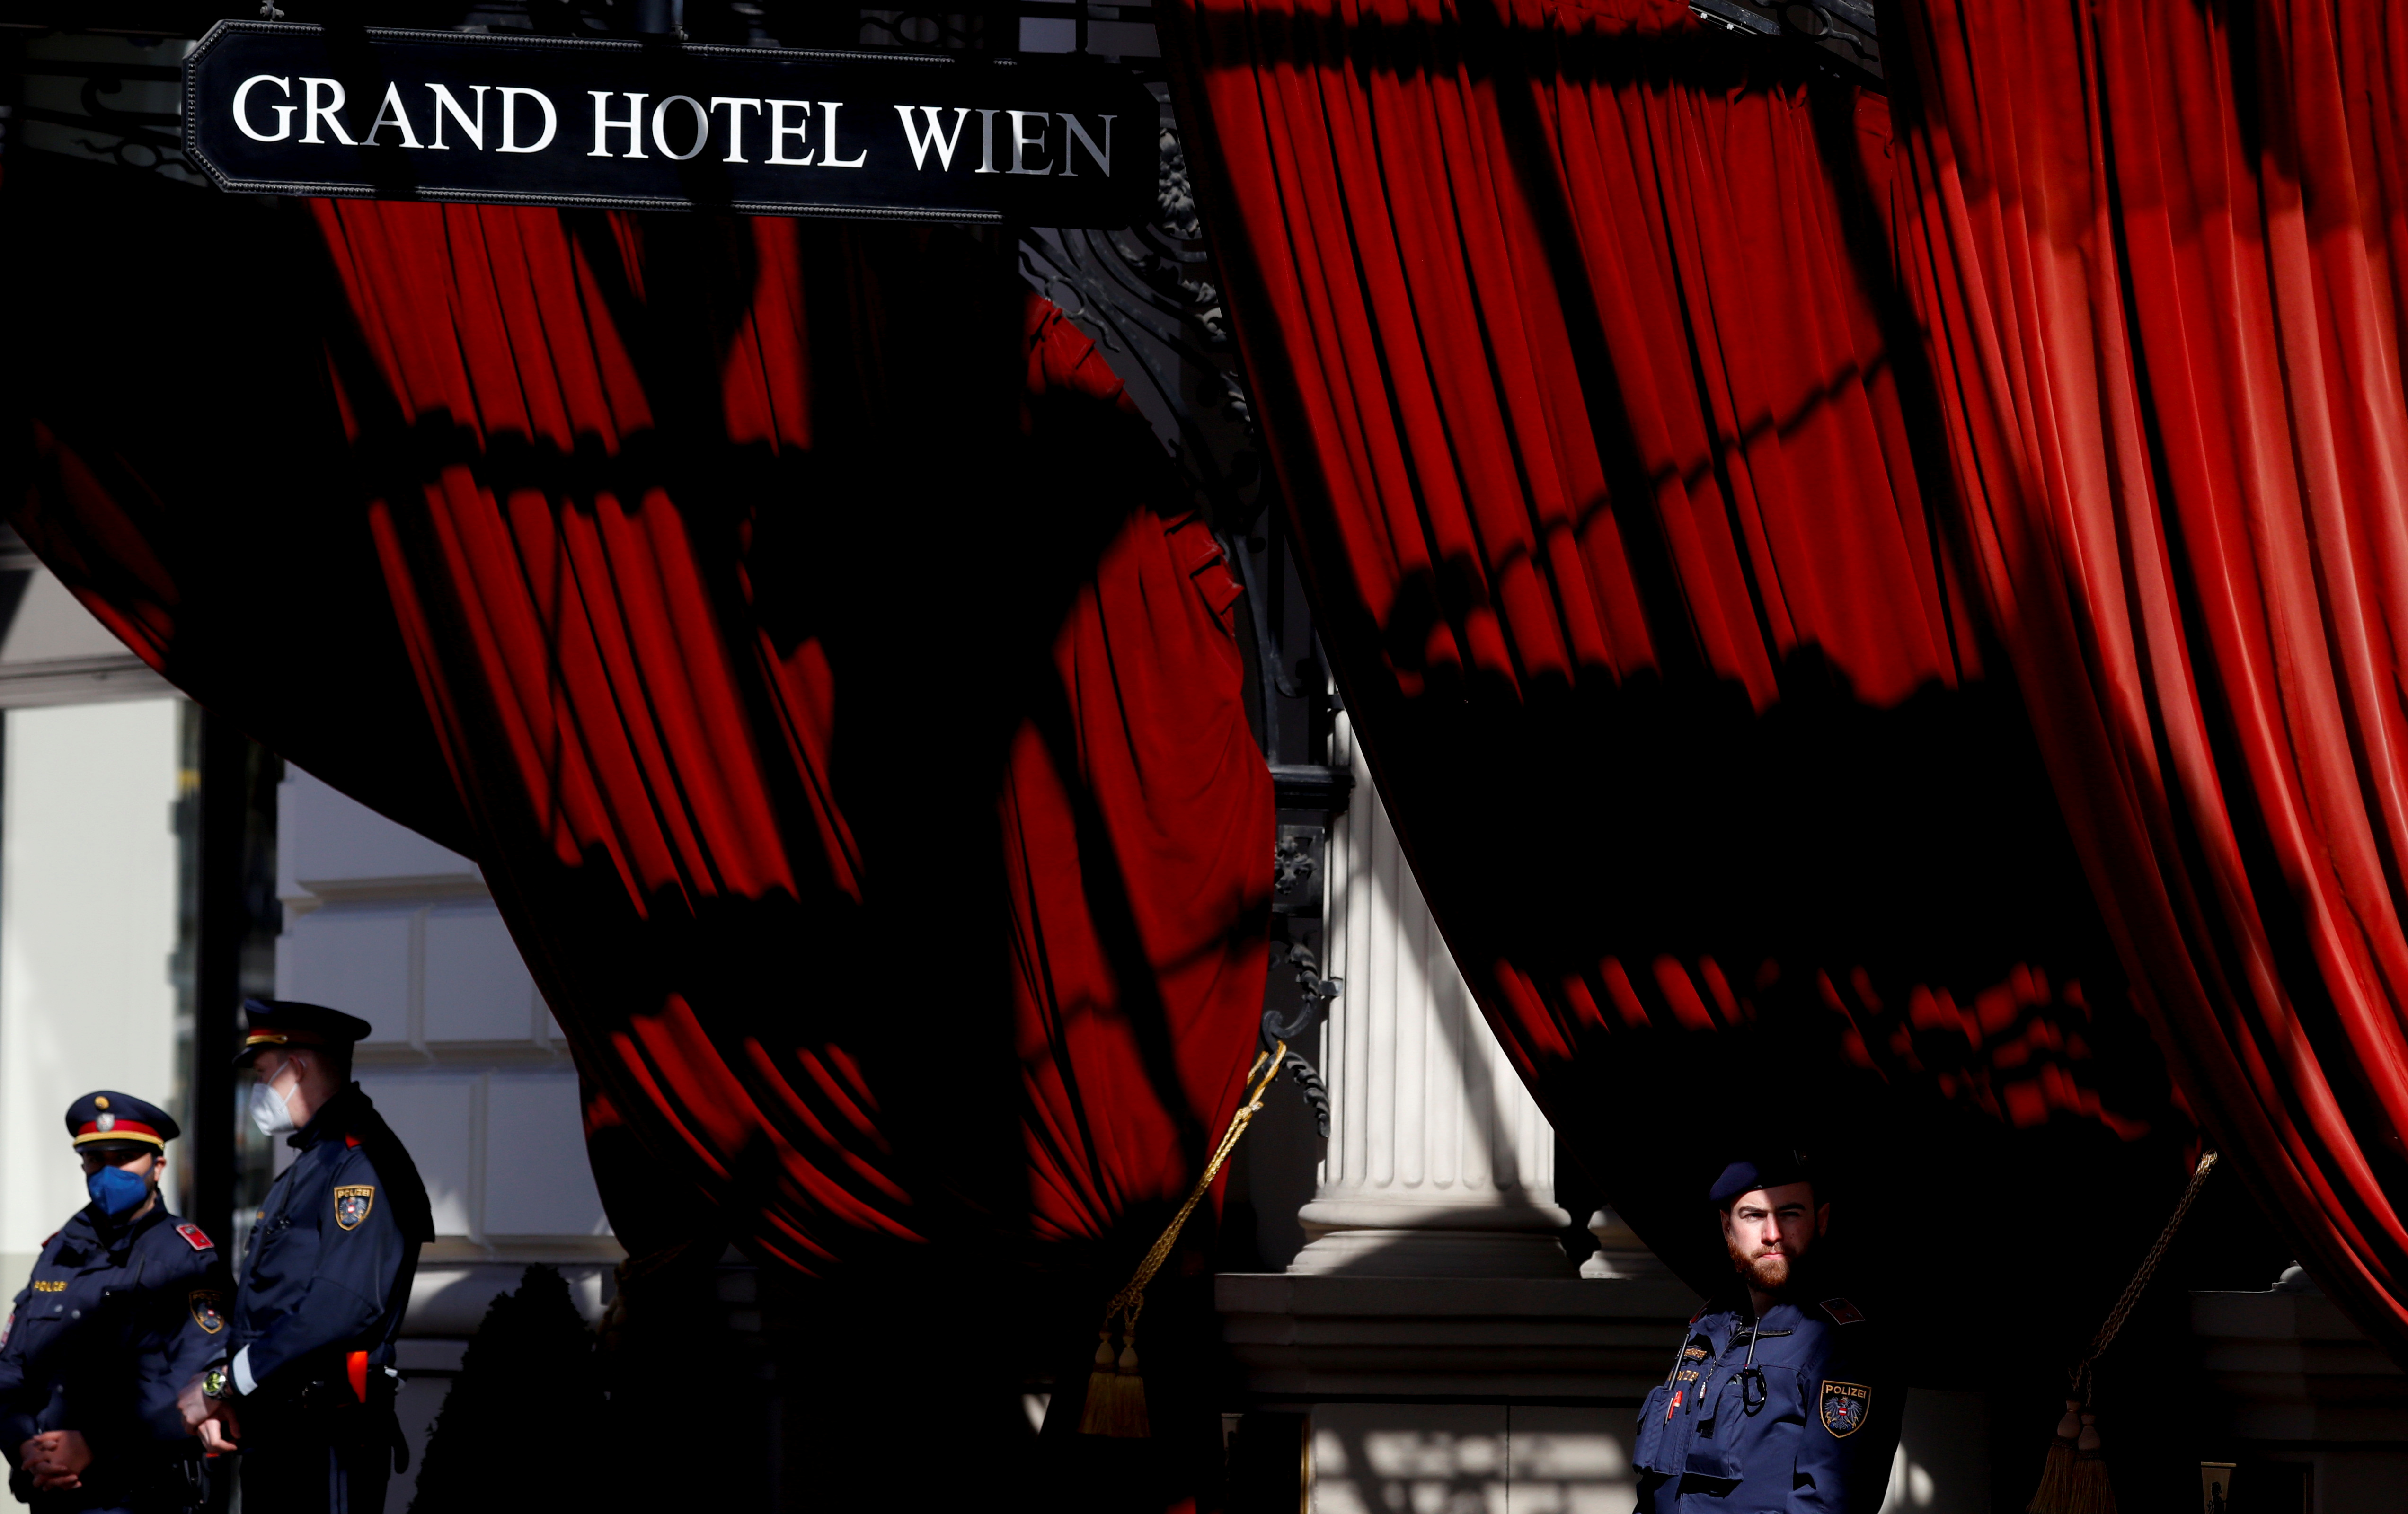 Police stand outside a hotel where a meeting of the JCPOA Joint Commission or Iran nuclear deal is held in Vienna, Austria, April 9, 2021. REUTERS/Leonhard Foeger